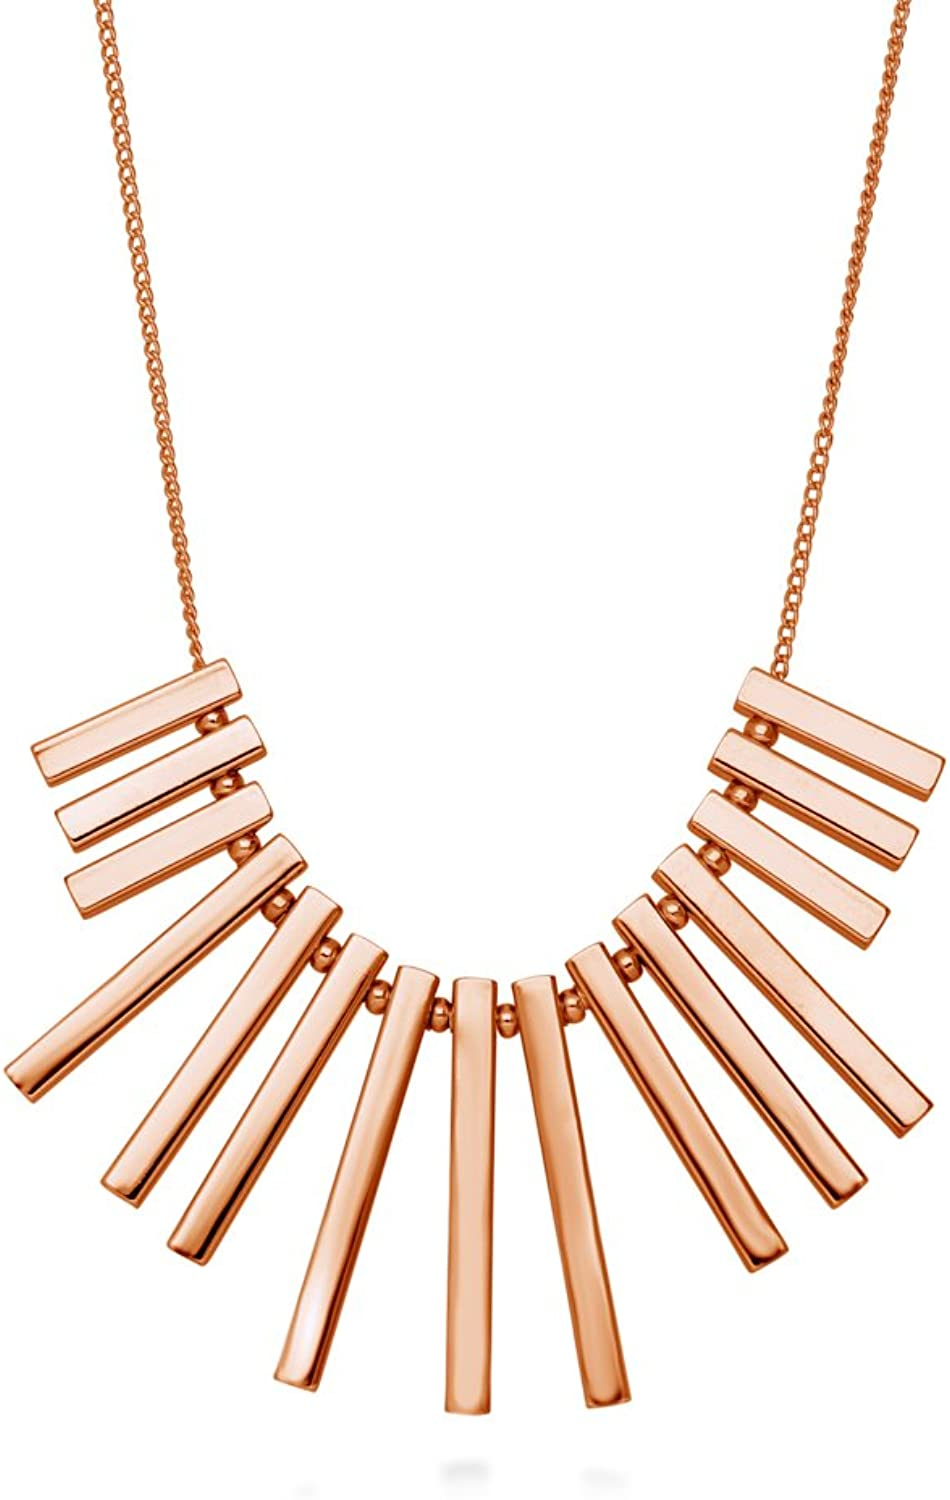 BERRICLE pink gold Plated Base Metal Bar Fashion Bib Statement Necklace 16.5 +2  Extender